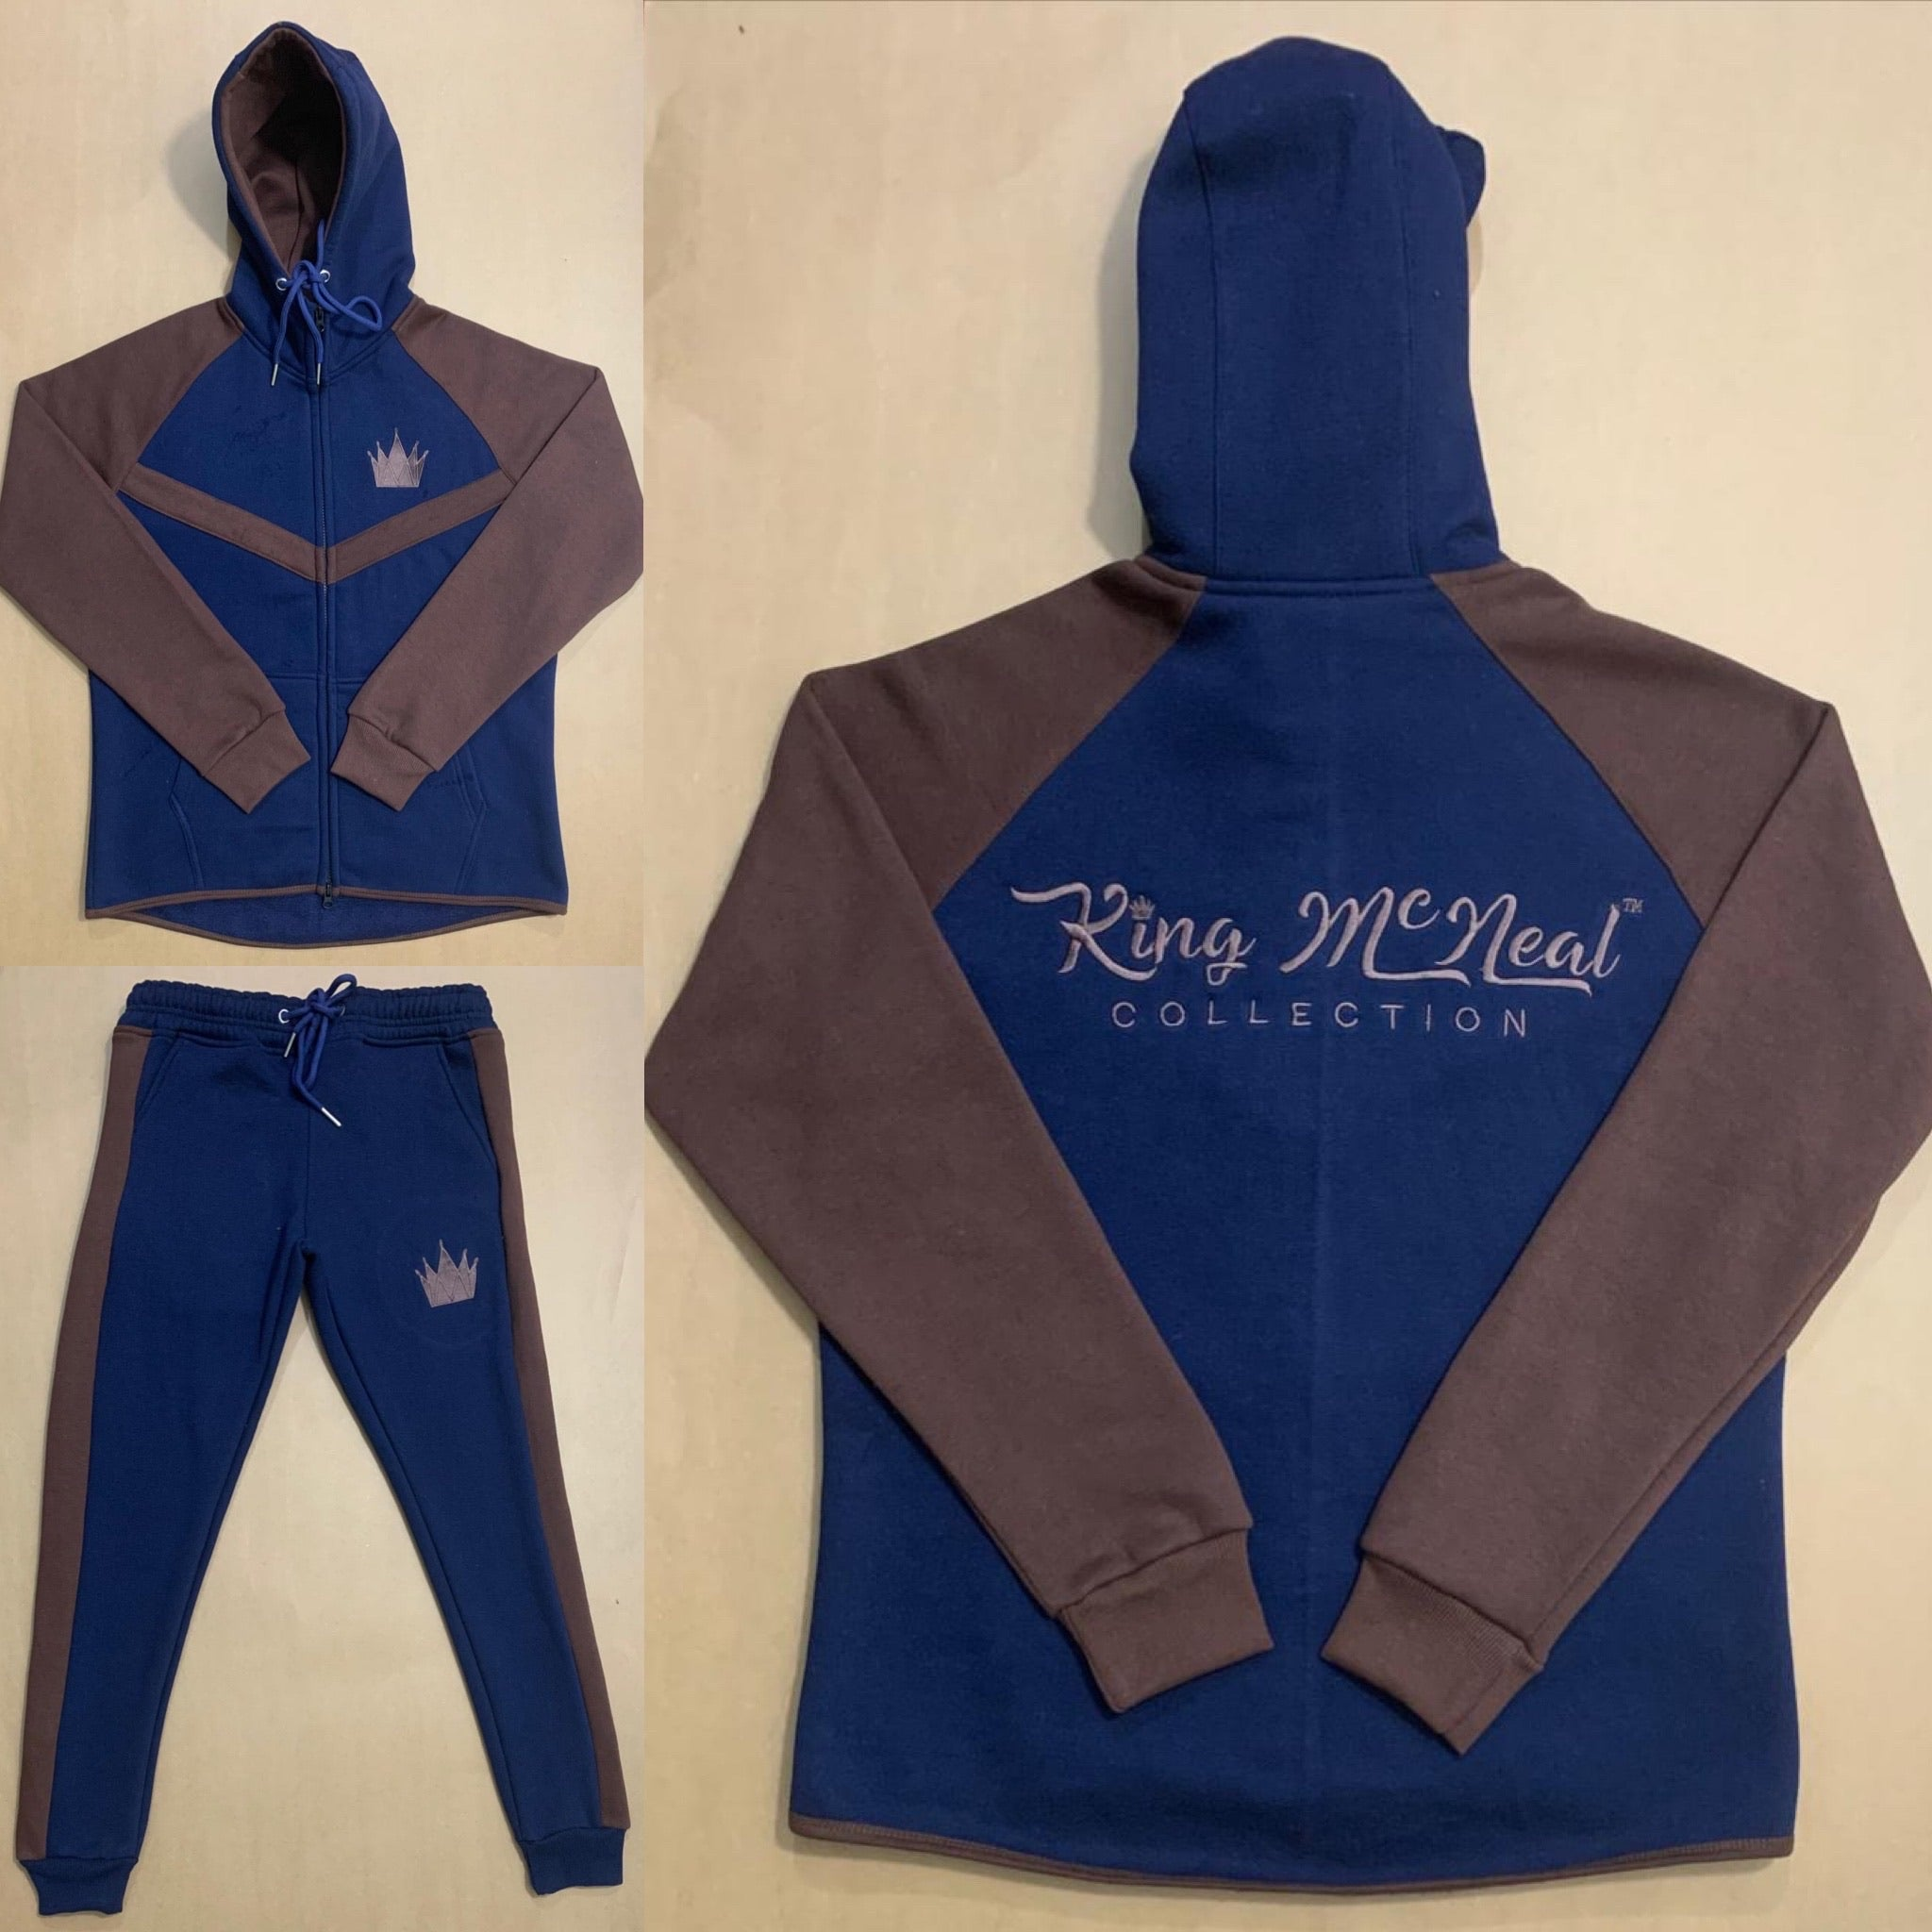 King McNeal collection sweatsuit navy and brown